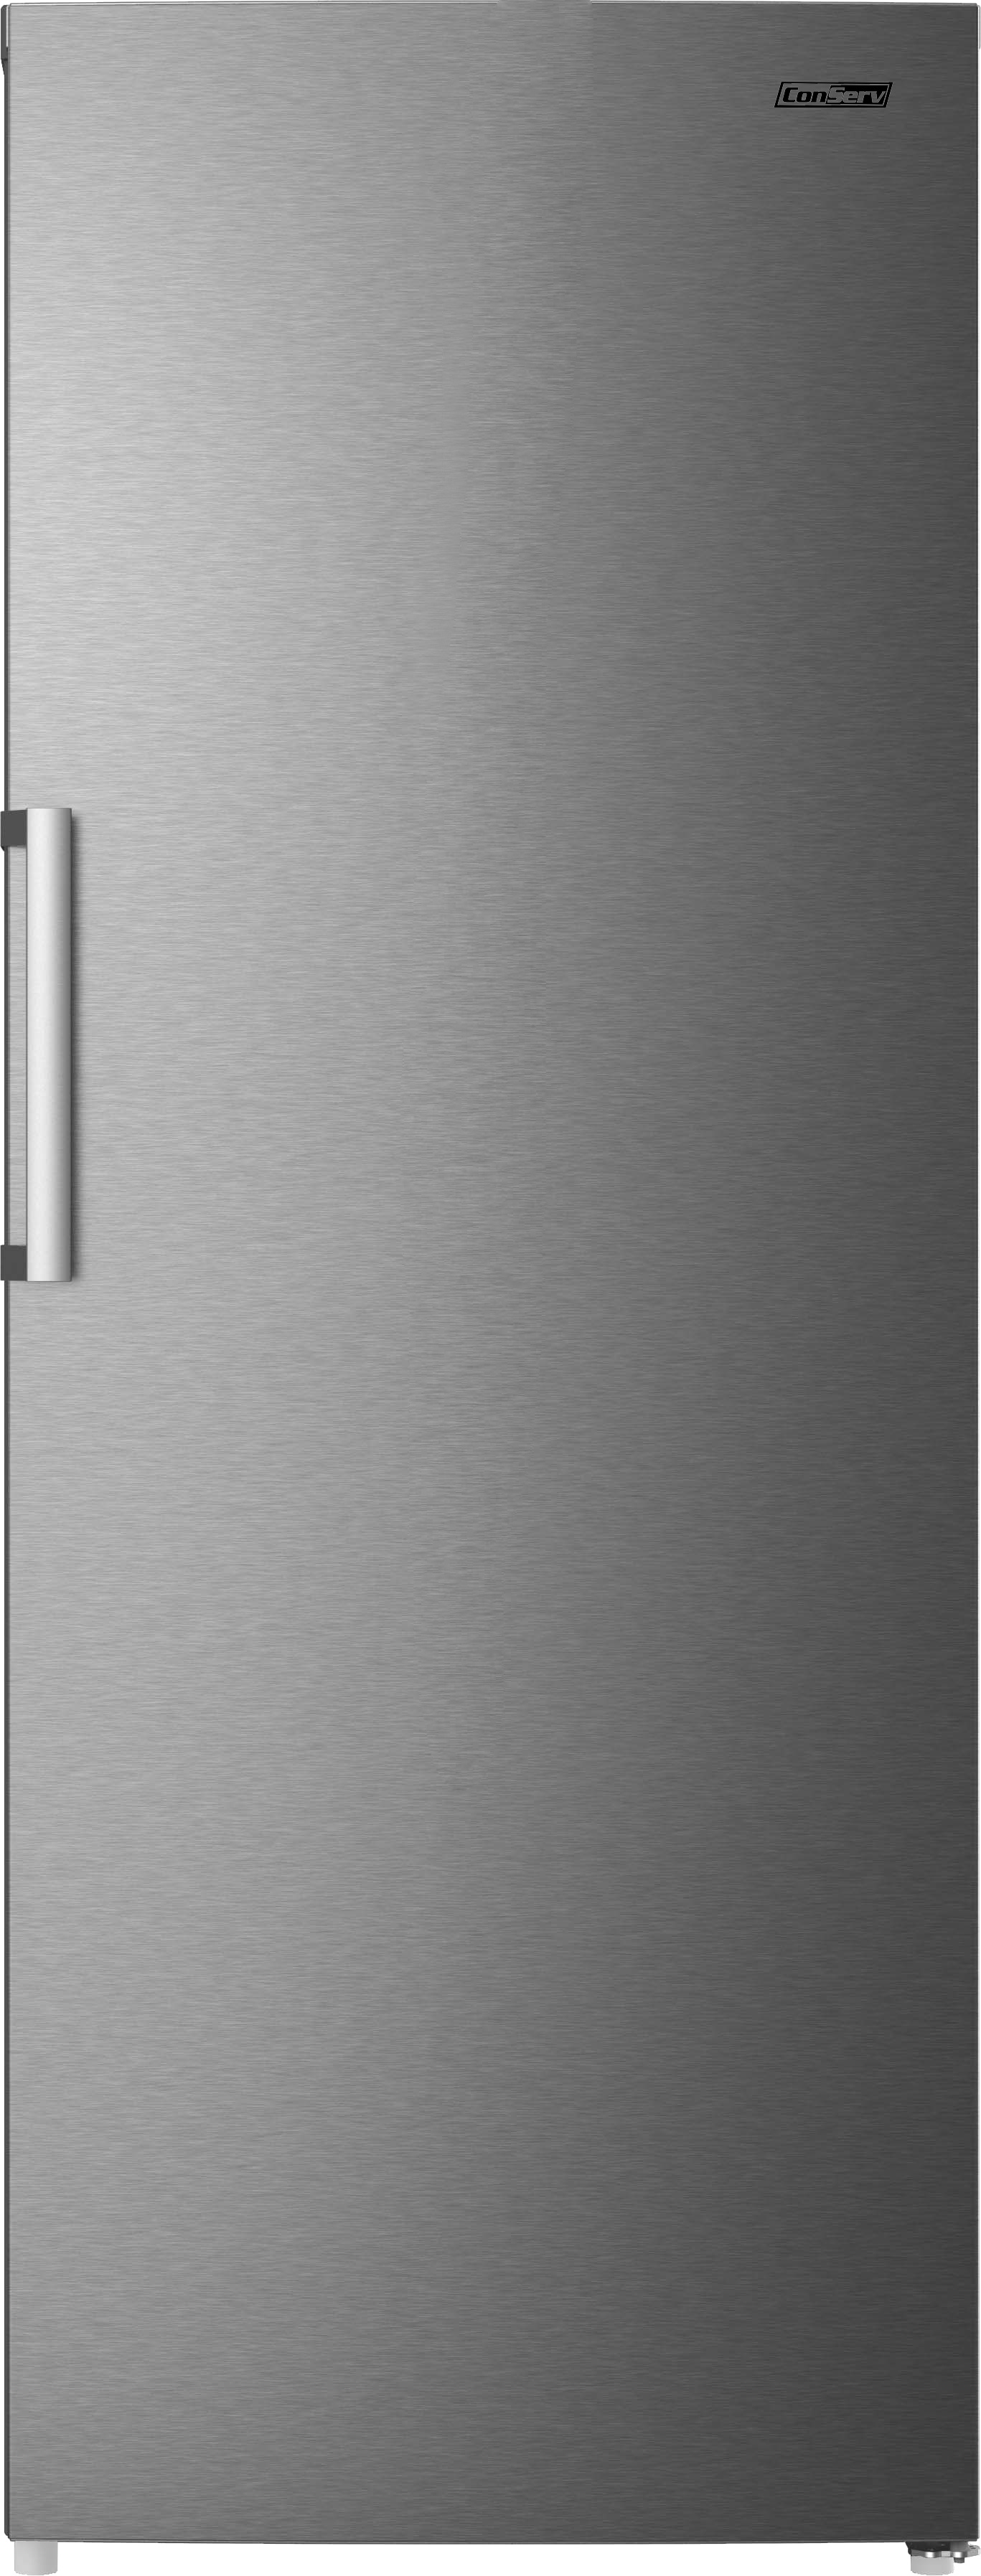 Conserv 13.5 cu. ft. Convertible Upright Freezer-Refrigerator in Stainless